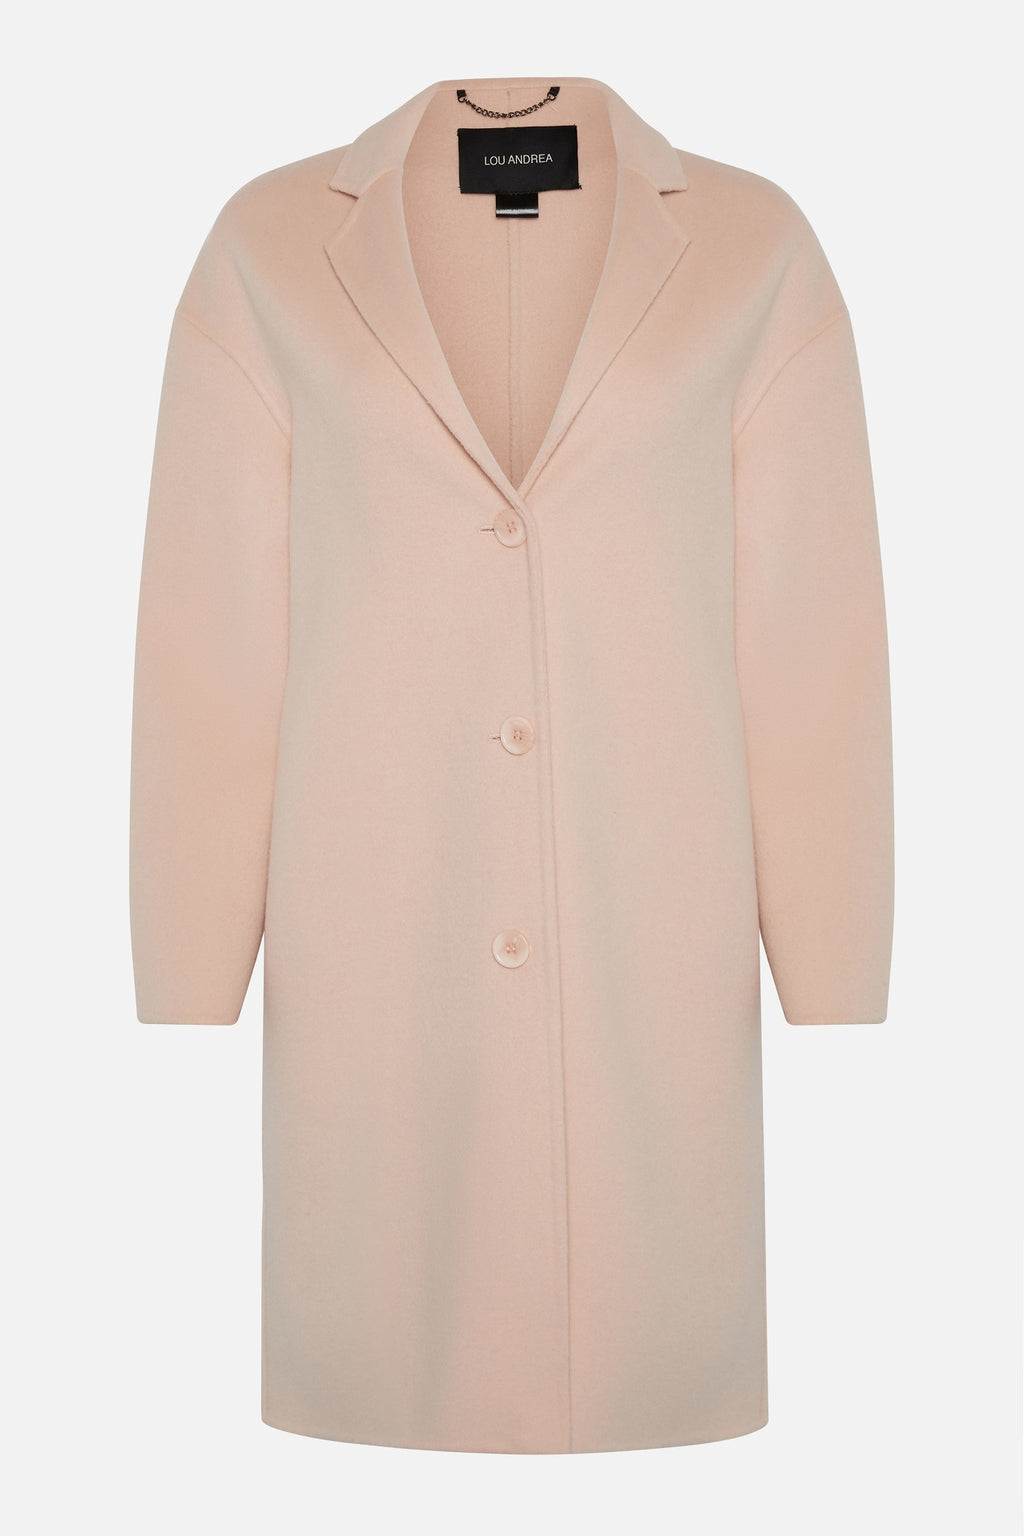 Lou Andrea Pink Wool Coat